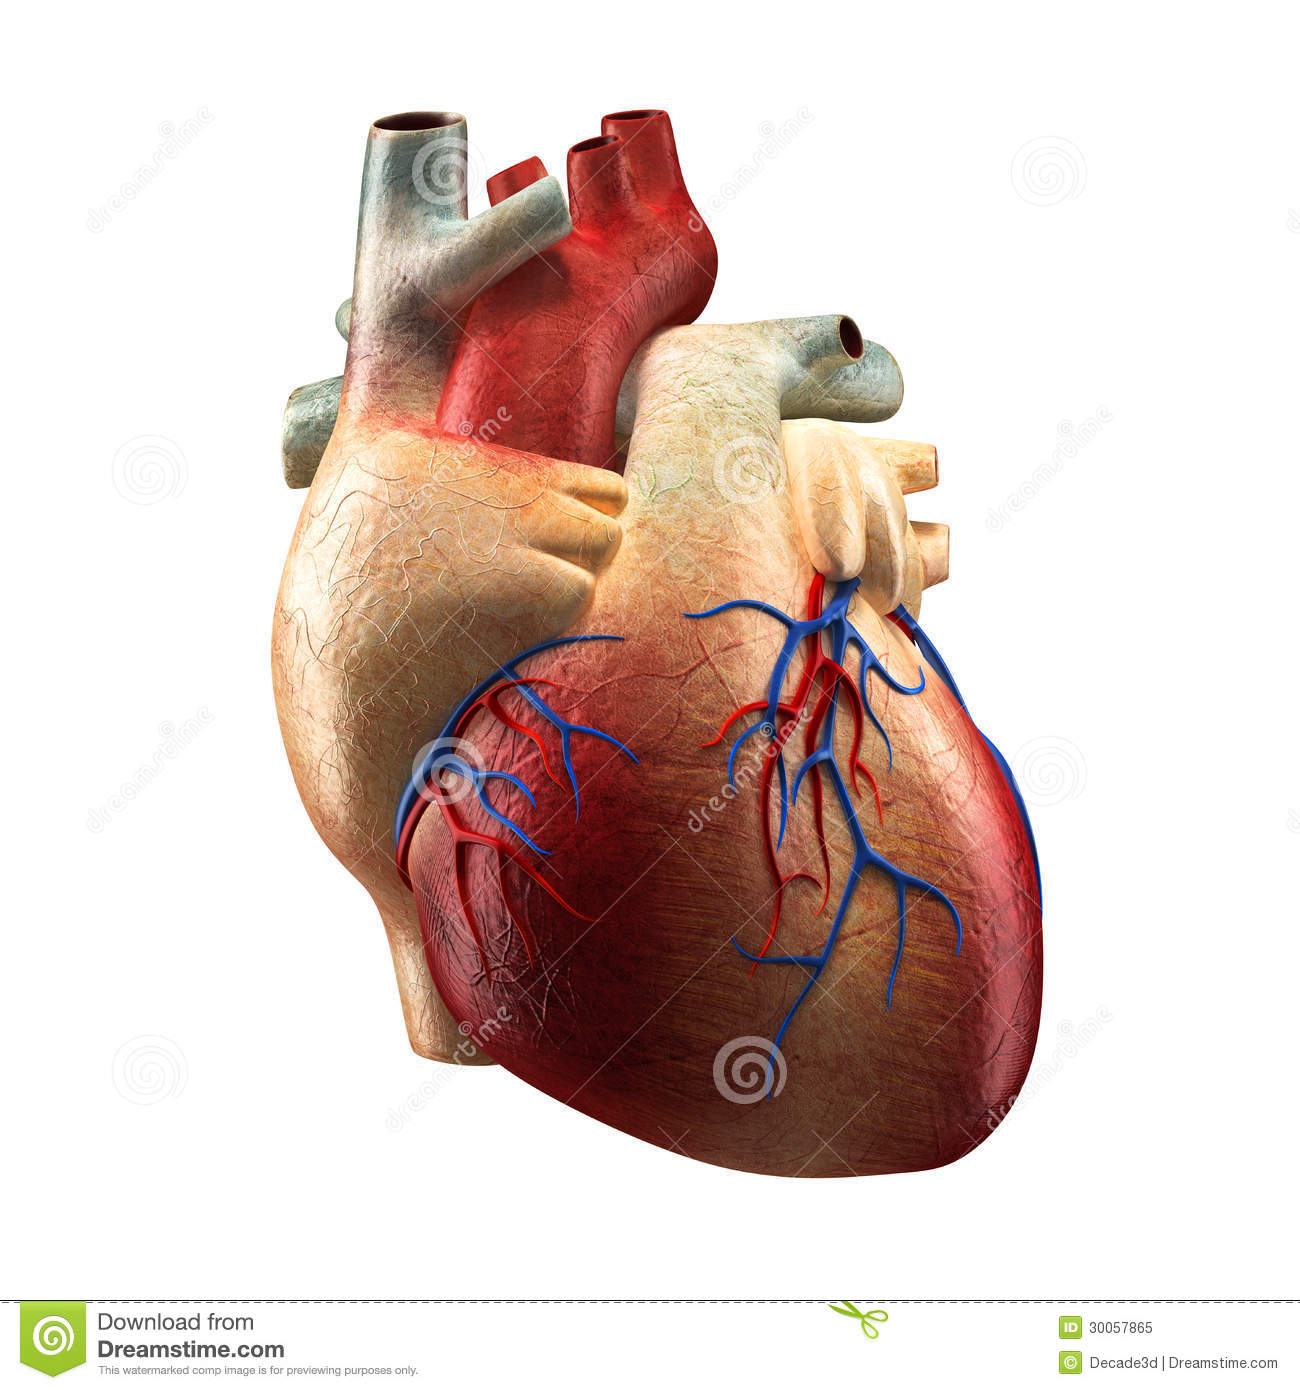 Real Heart Isolated On White Human Anatomy Model Stock